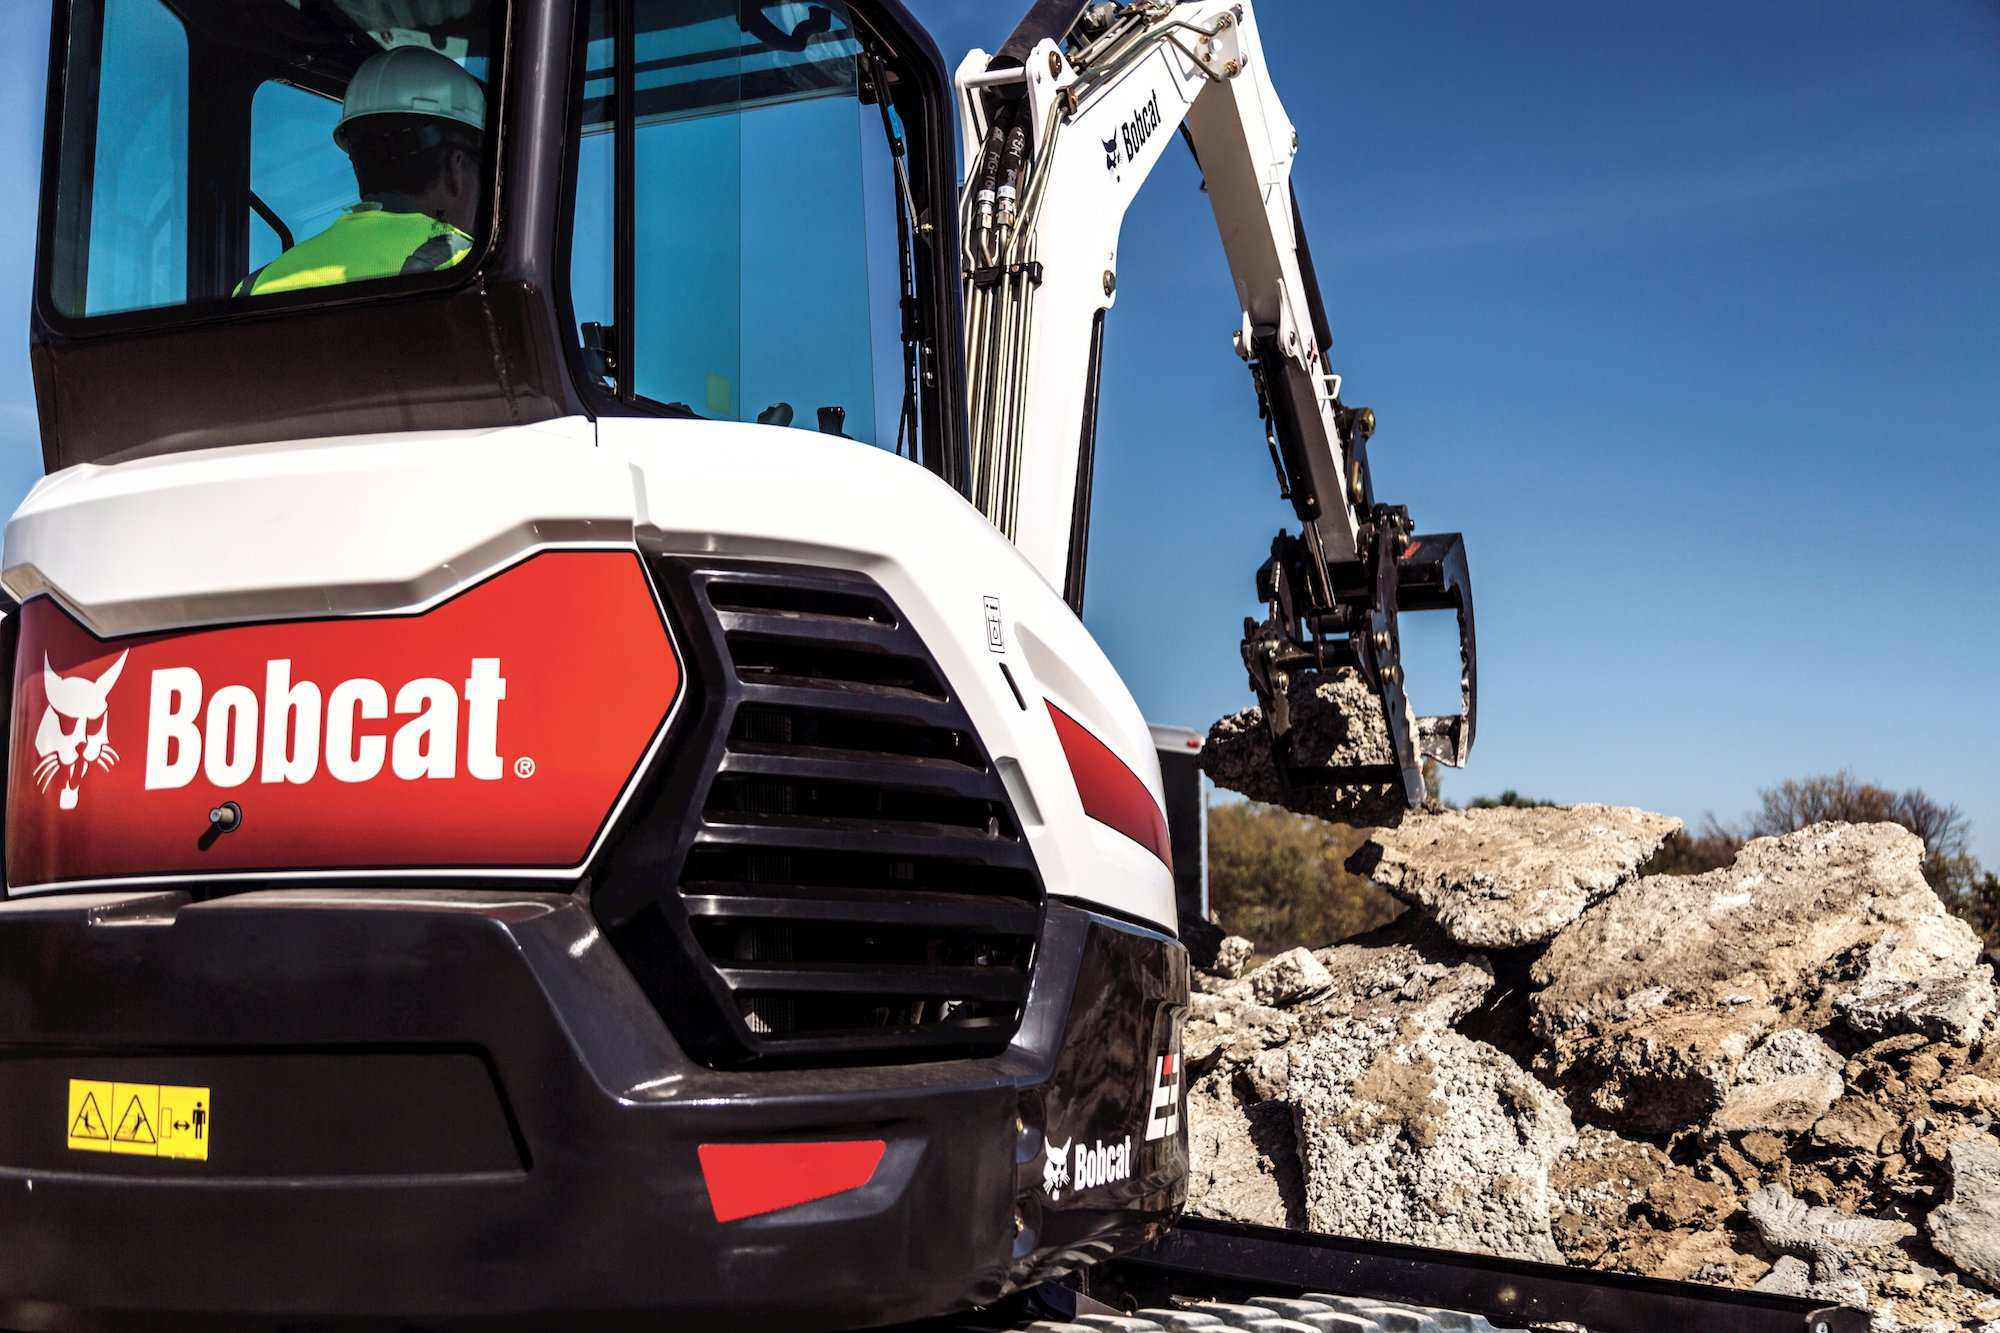 Bobcat unveils R-Series E32 and E35 compact excavators